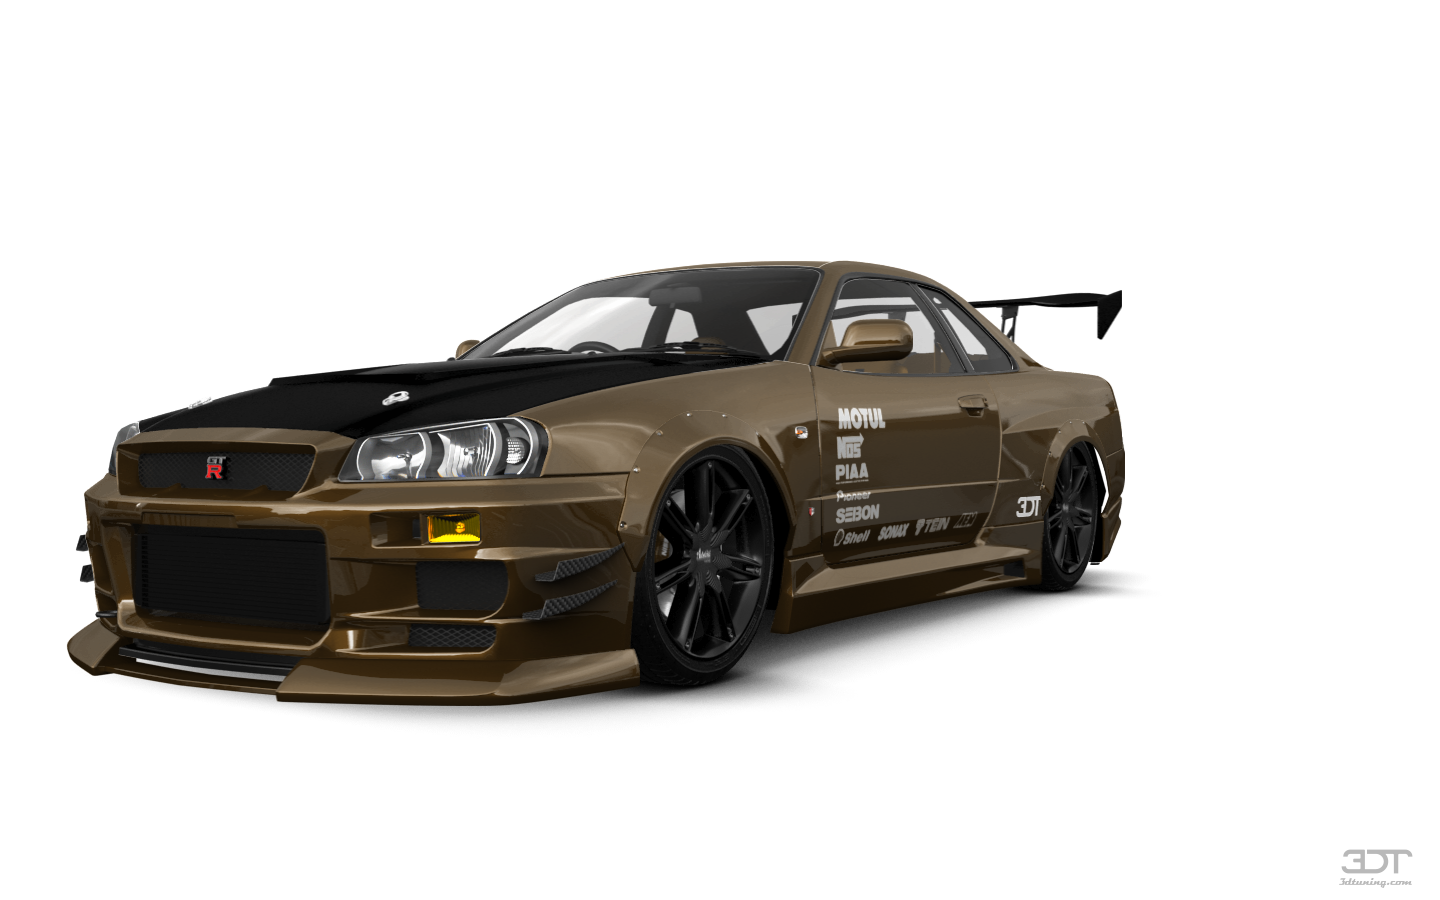 Nissan Skyline GT-R 2 Door Coupe 2000 tuning